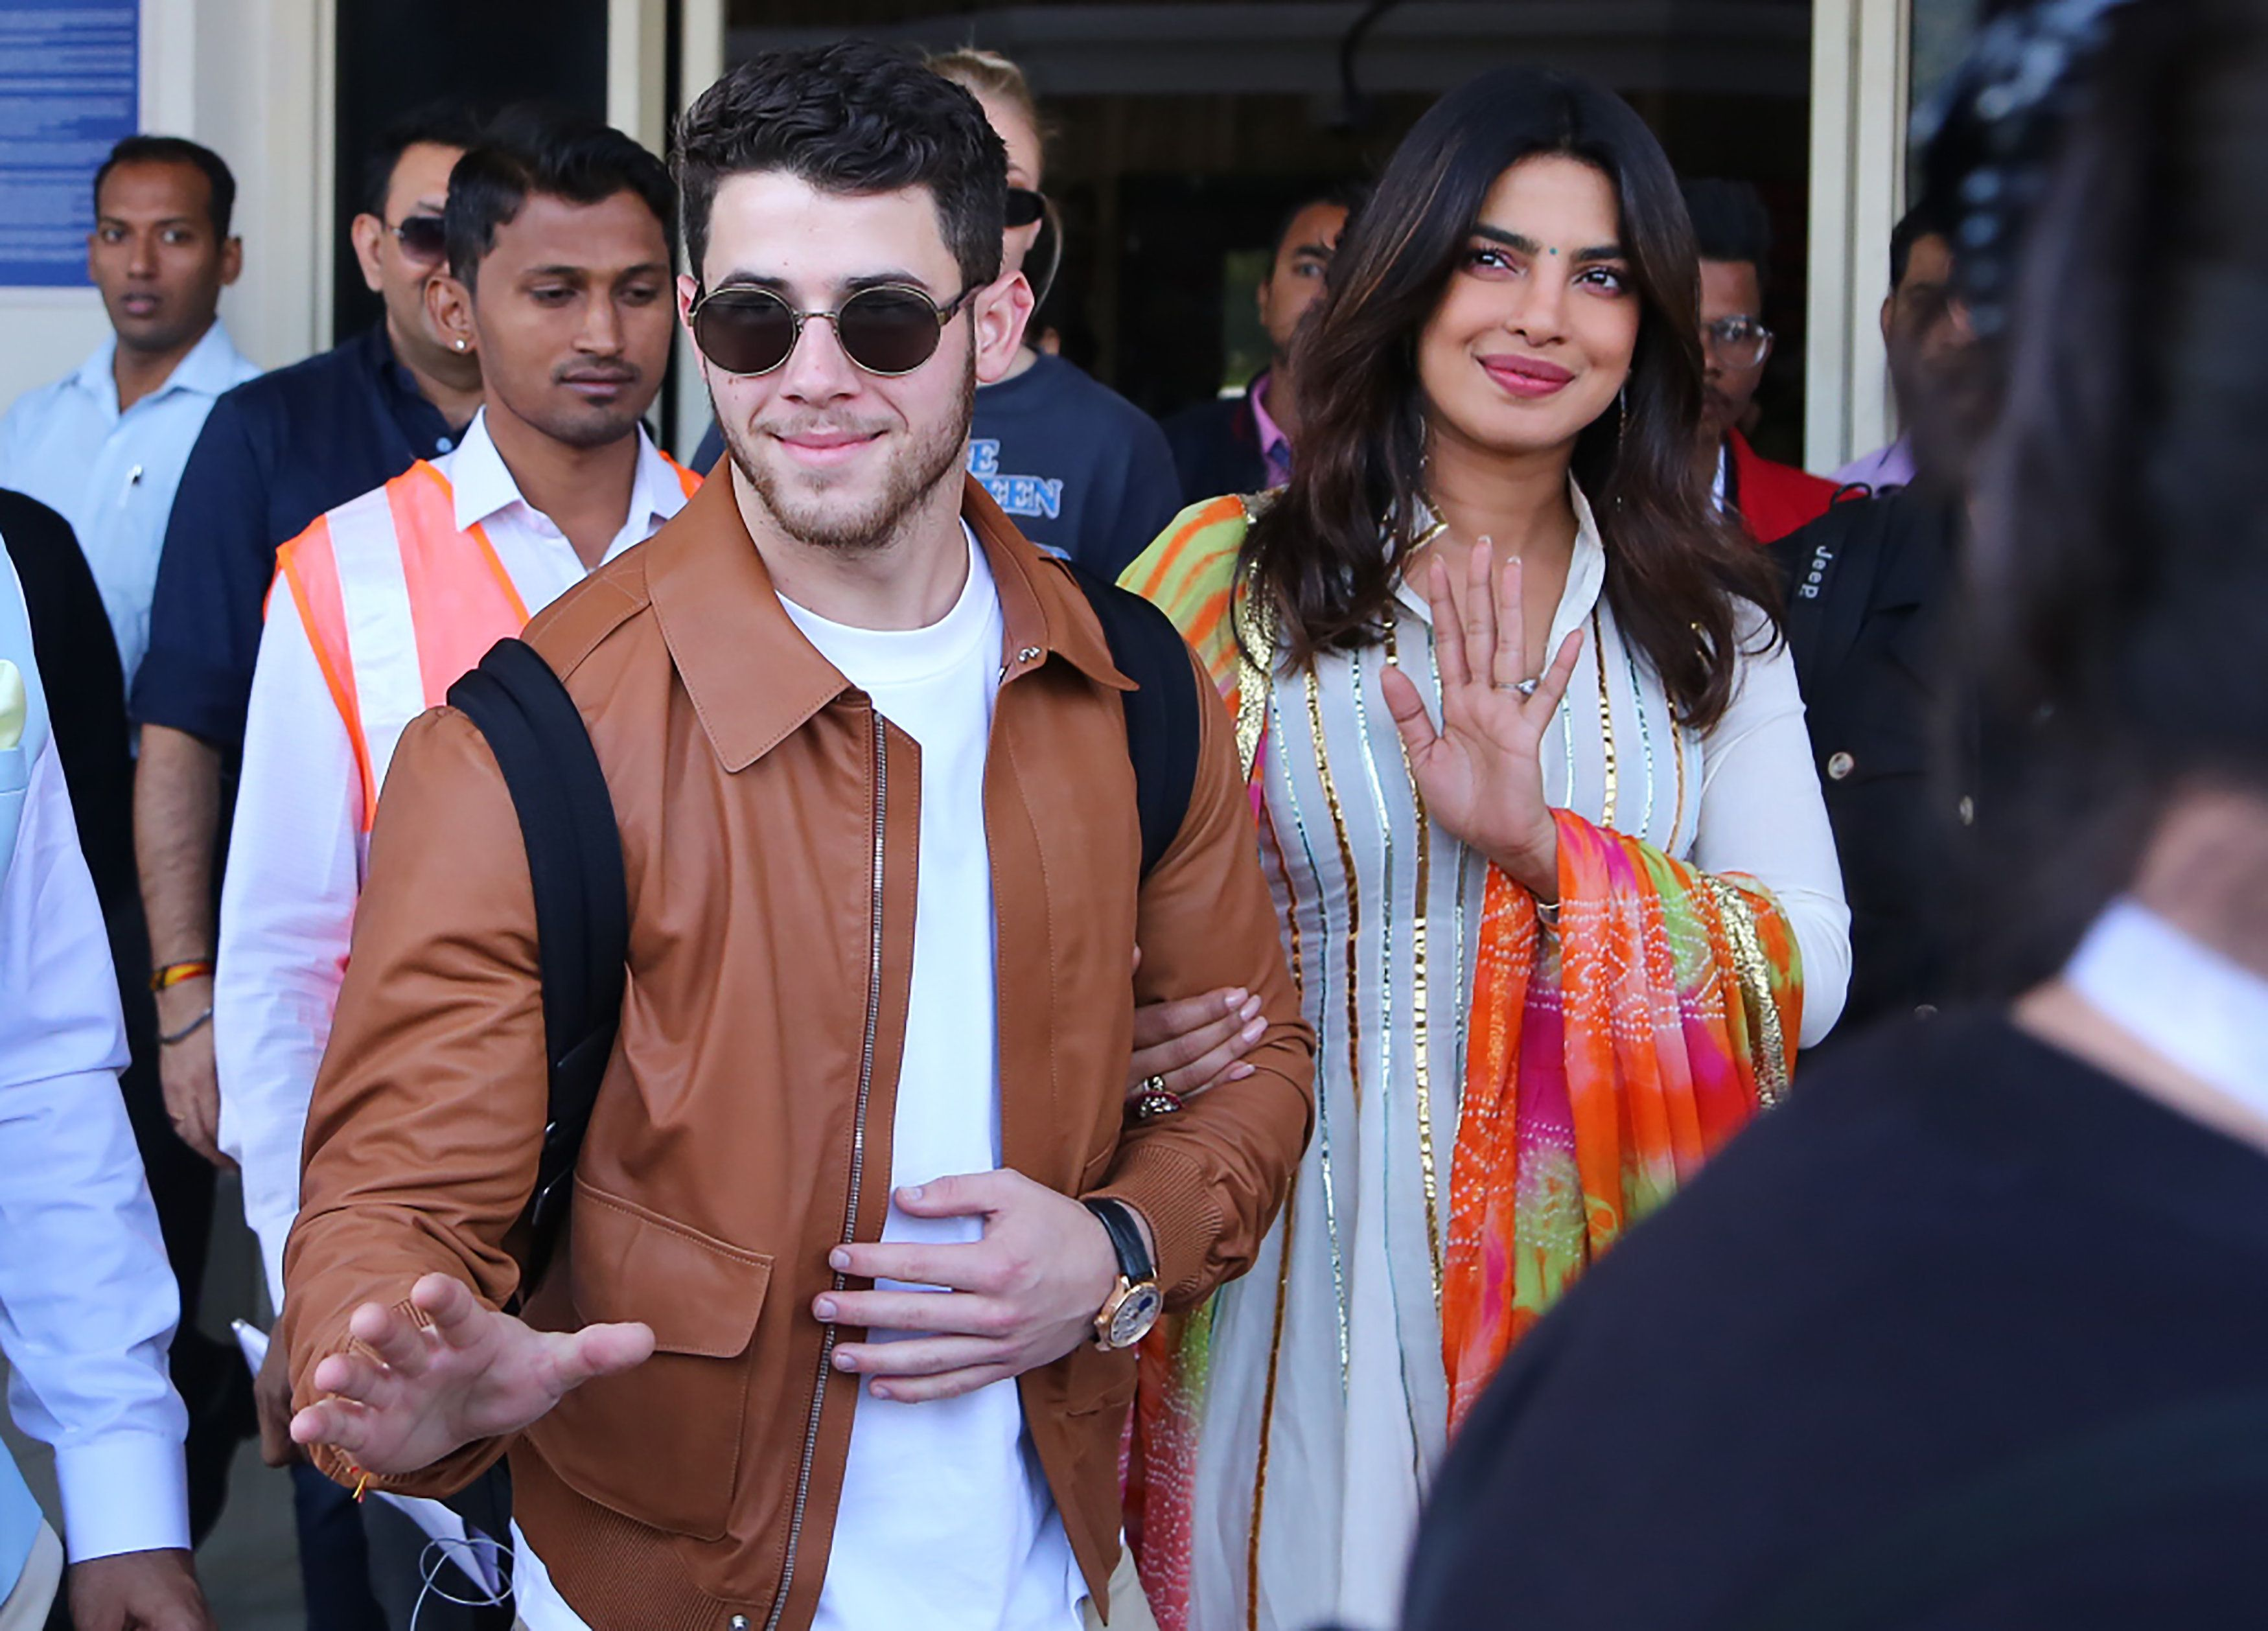 TOPSHOT - Indian actress Priyanka Chopra (R) and US musician Nick Jonas (centre L) arrive in Jodhpur in the western Indian state of Rajasthan on November 29, 2018. - Chopra and Jonas are set to be married in a series of ceremonies in Jodhpur. (Photo by Sunil VERMA / AFP)        (Photo credit should read SUNIL VERMA/AFP/Getty Images)